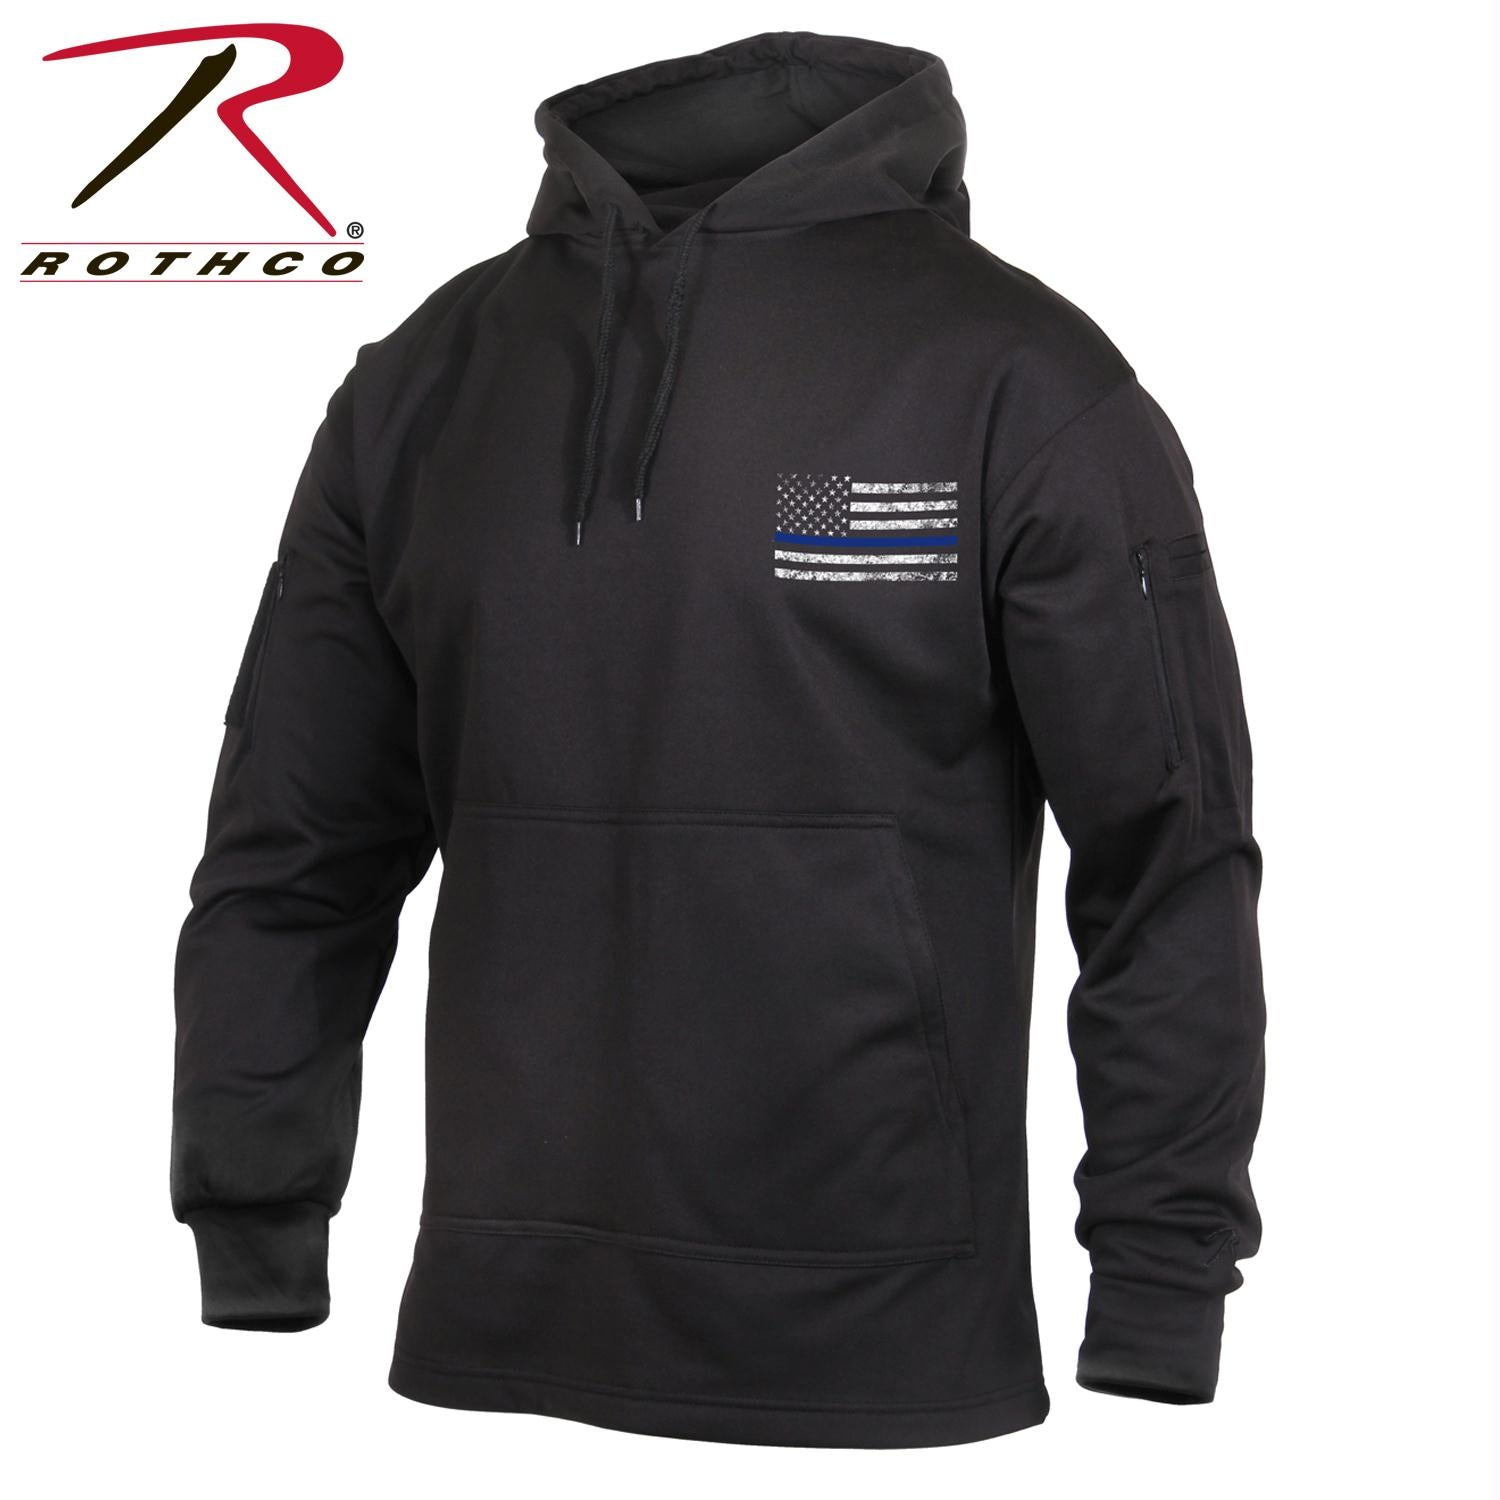 Rothco Thin Blue Line Concealed Carry Hoodie - Black / 4XL